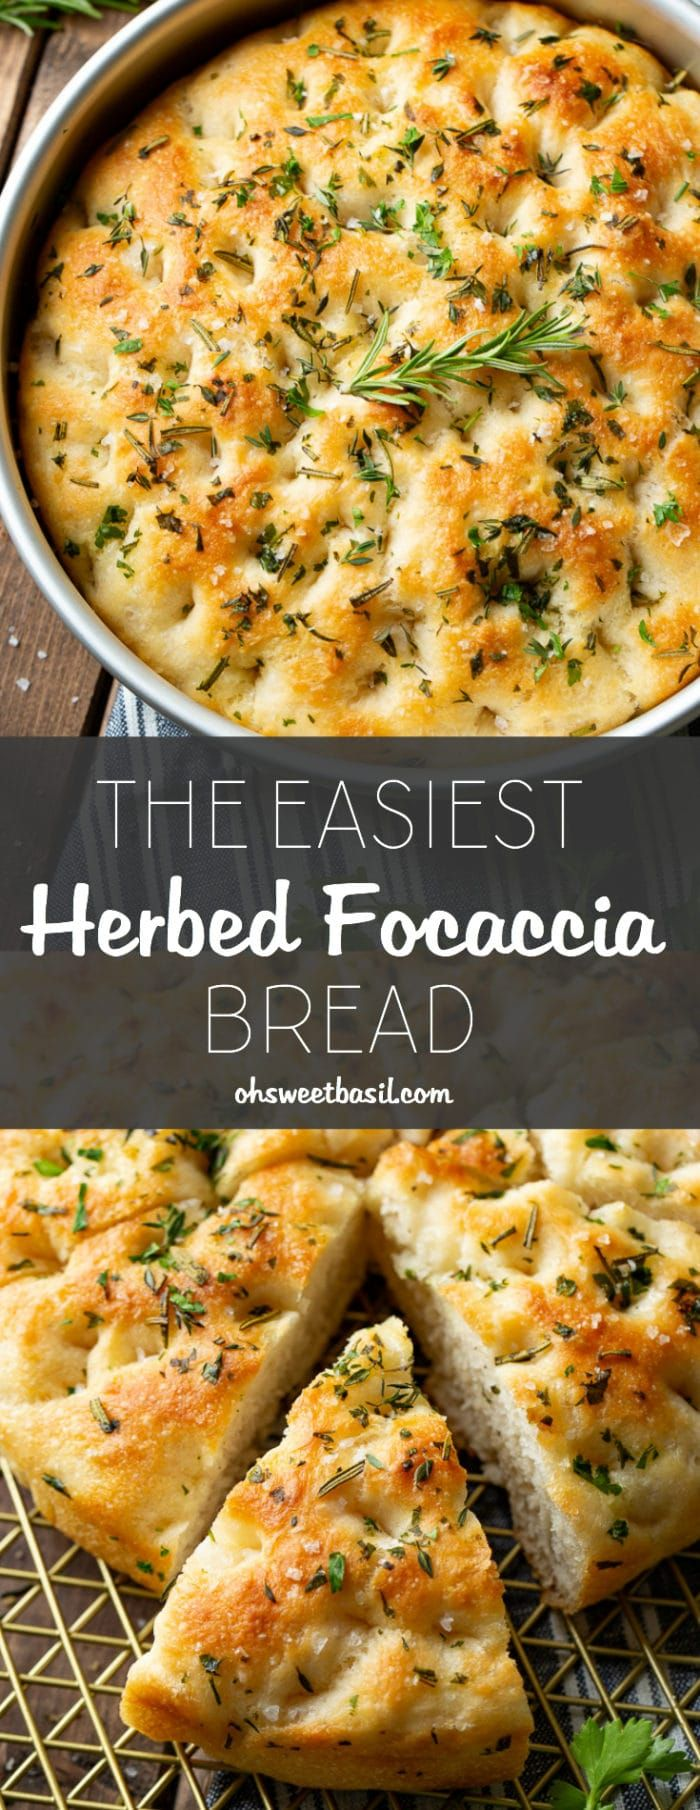 It's just a simple bread, light and airy, a yummy olive oil saltiness and those fresh herbs bring the whole loaf to life. Use it as a side or to build delicious sandwiches! This is our recipe for the Easiest Herbed Focaccia Bread! #bread #focaccia #side #sidedish #sandwichbread #herb #oliveoil #yeast Easy Bread Recipes, Cooking Recipes, Herb Recipes, Easiest Bread Recipe, Recipe For Bread, Olive Bread Recipe Easy, Recipes With Fresh Herbs, Basil Bread Recipe, Cooking Corn